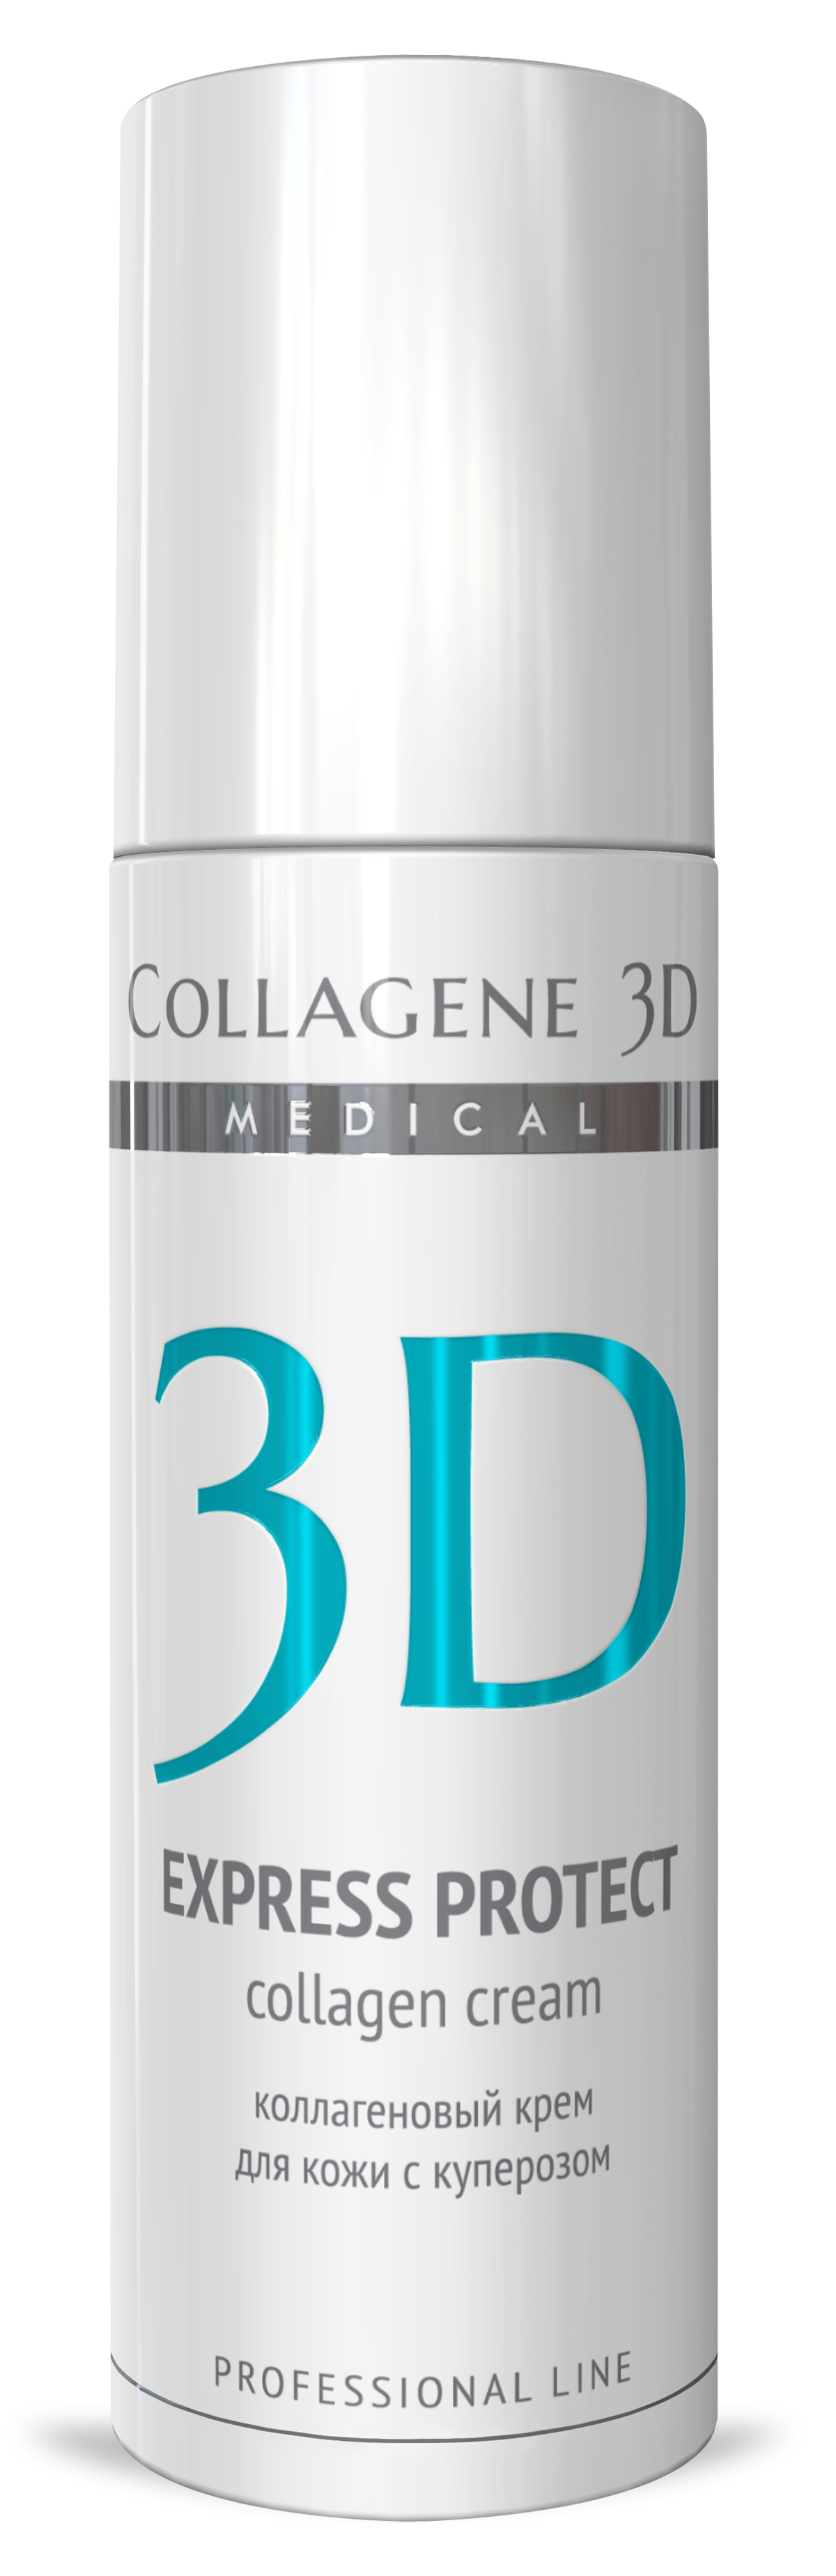 "MEDICAL COLLAGENE 3D ���� � ���������� � ������� �������� ��� ���� ""Express Protect"" 150�� ����."